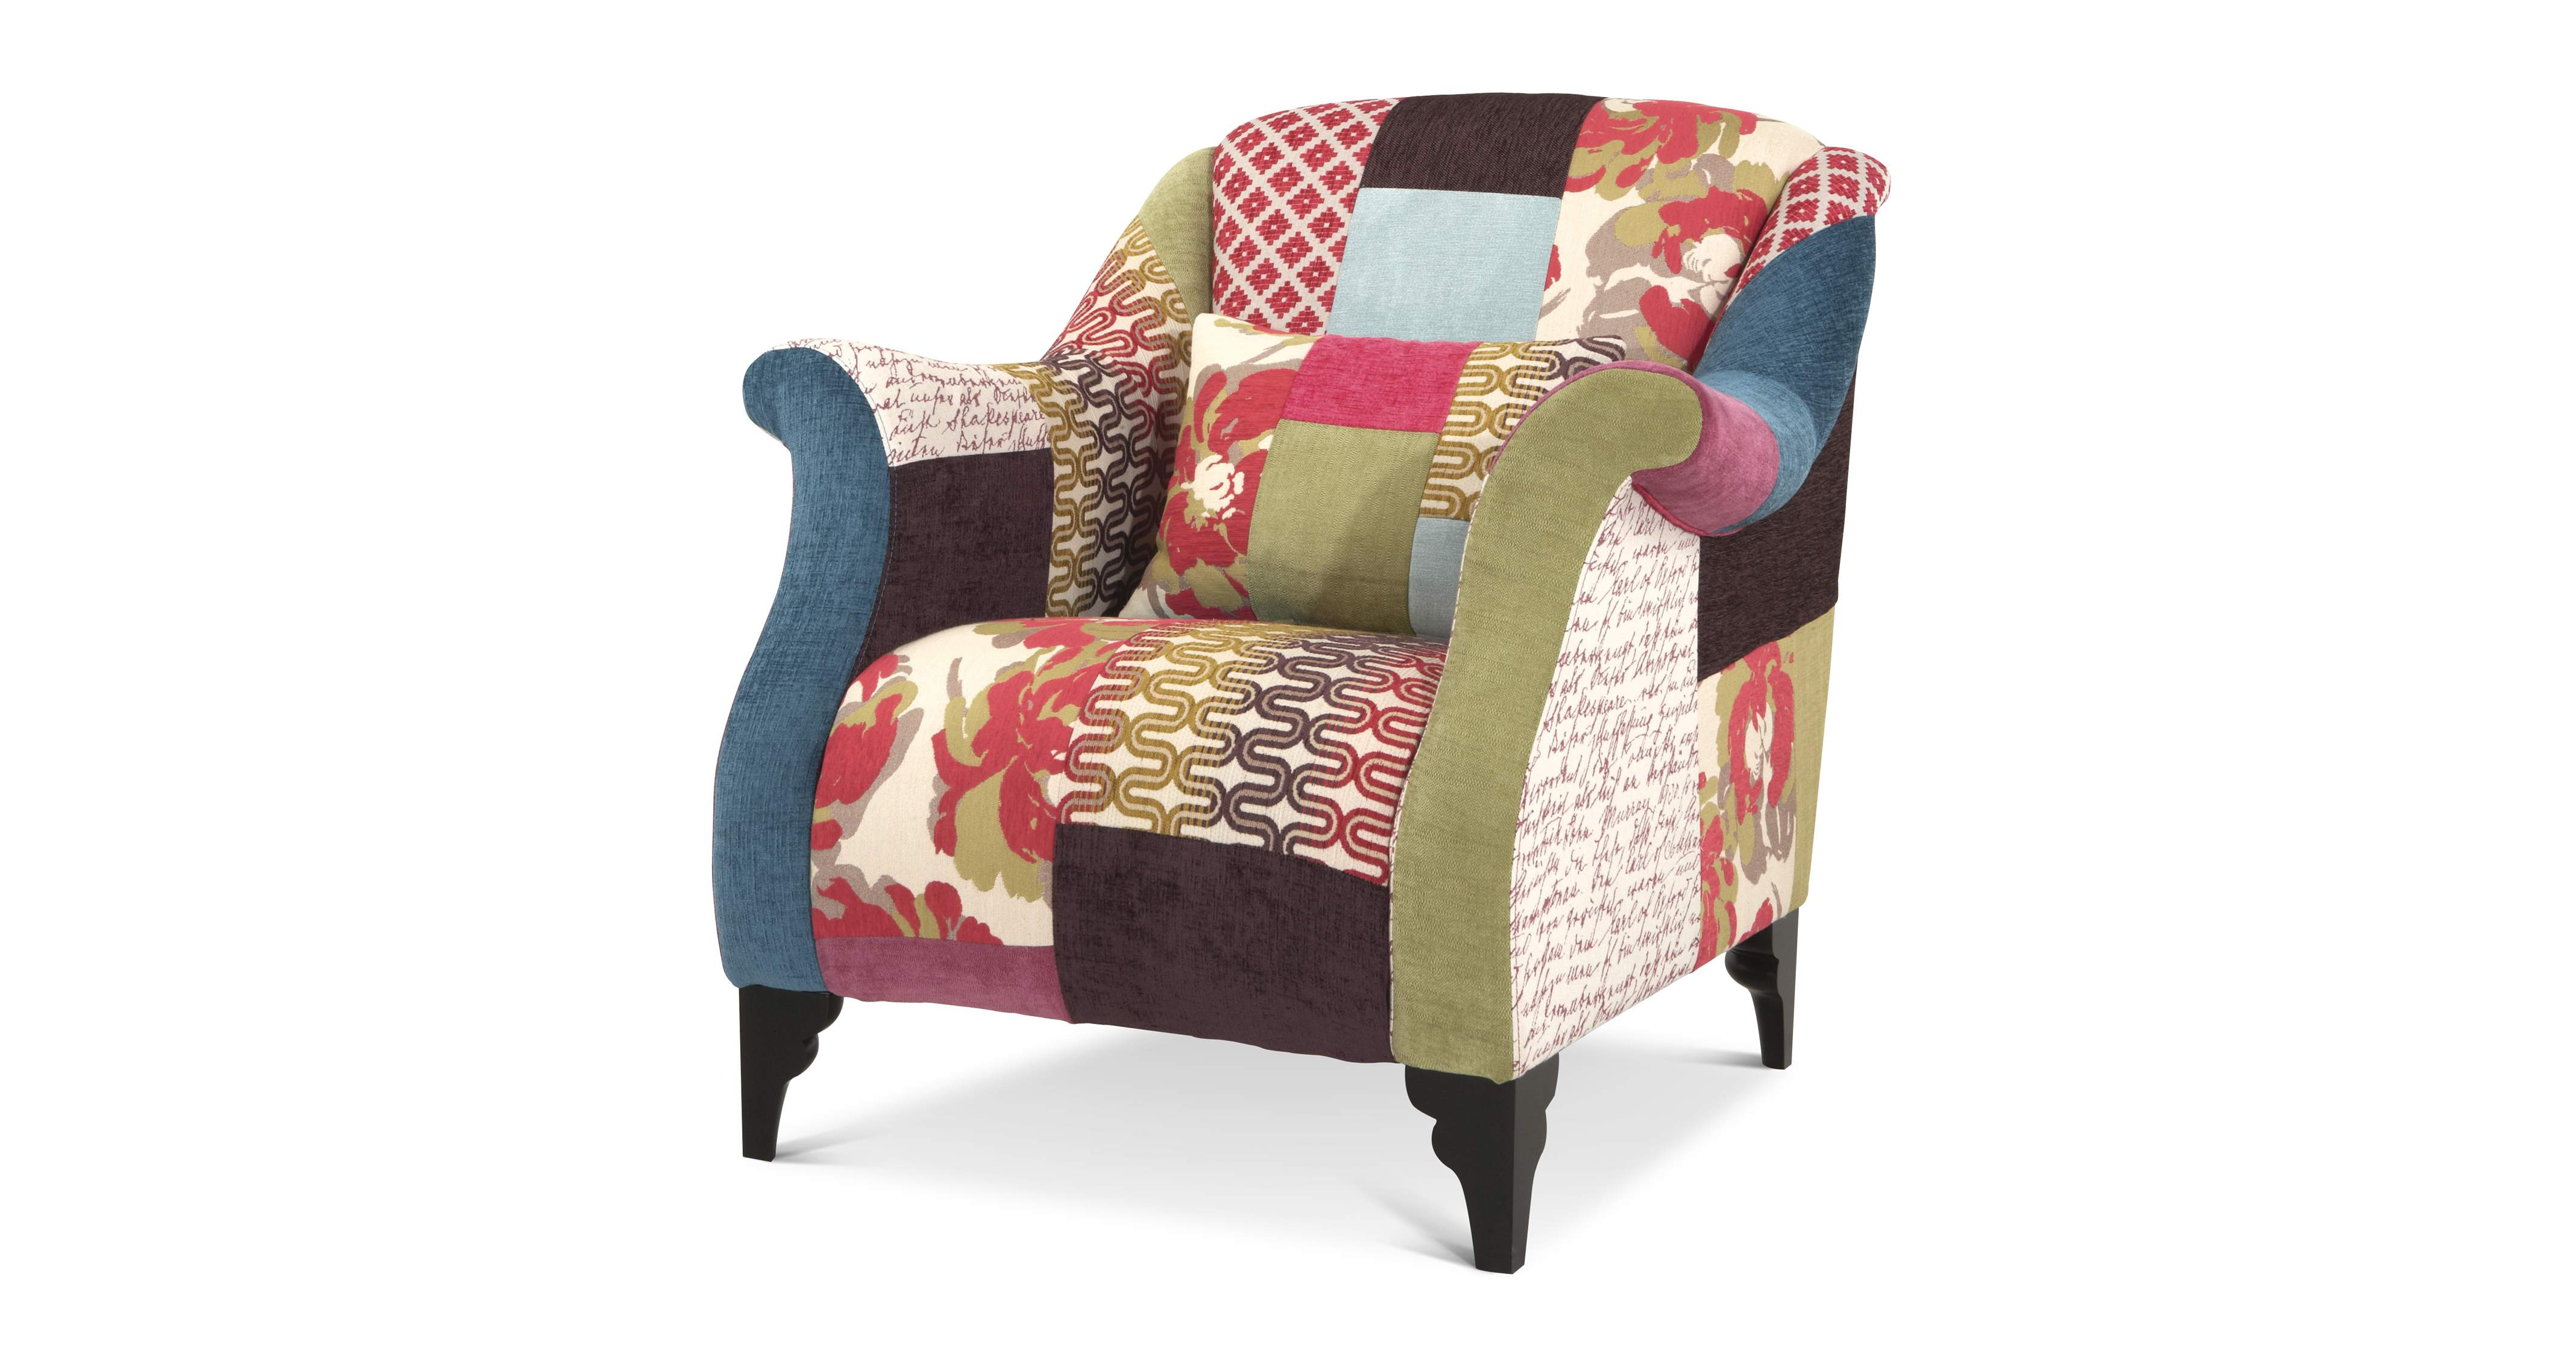 DFS Shout Set Incl Pink Sofa Chair Teal Storage Foot Stool